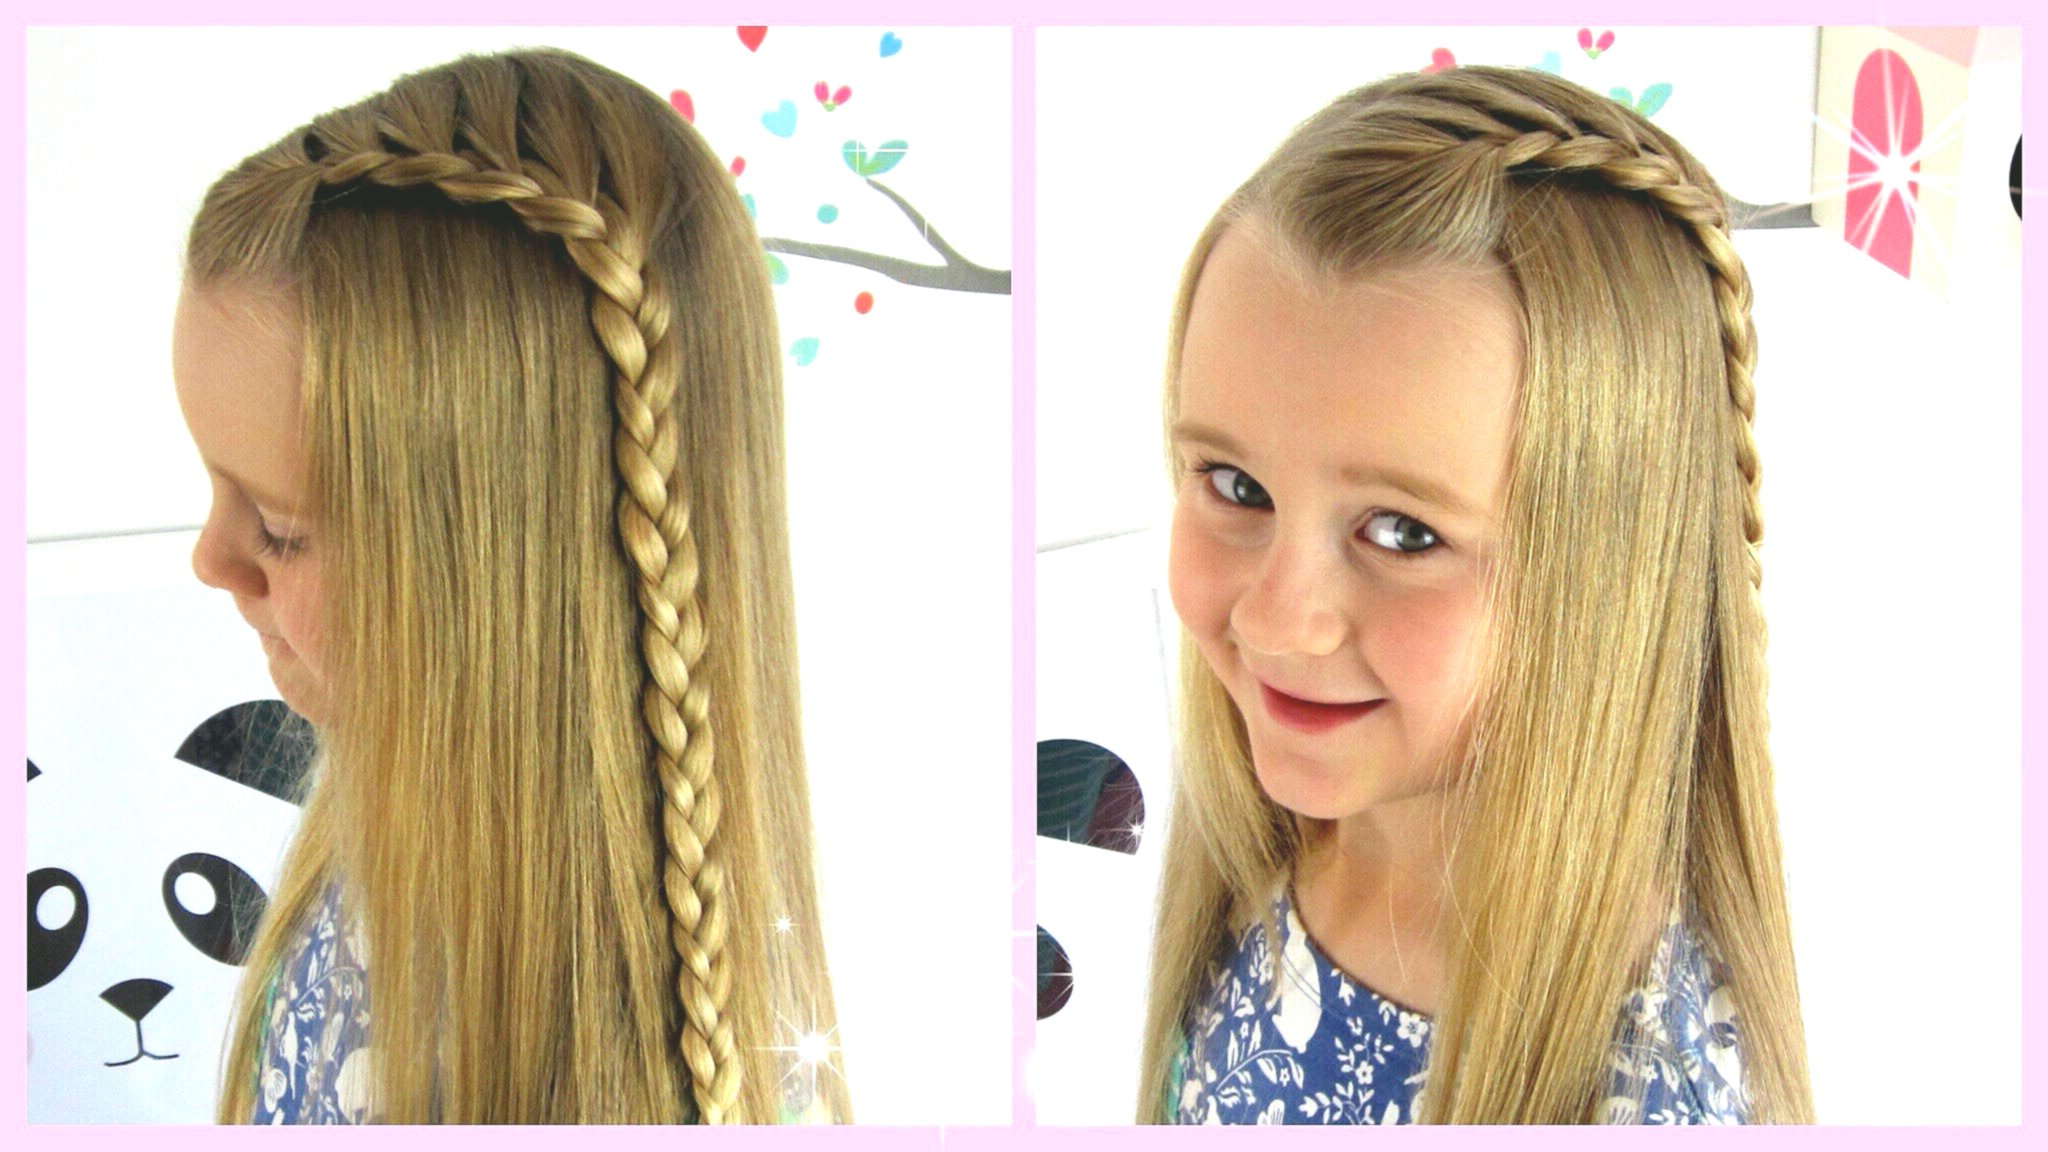 lovely hairstyles braiding design-Breathtaking hairstyles braiding design